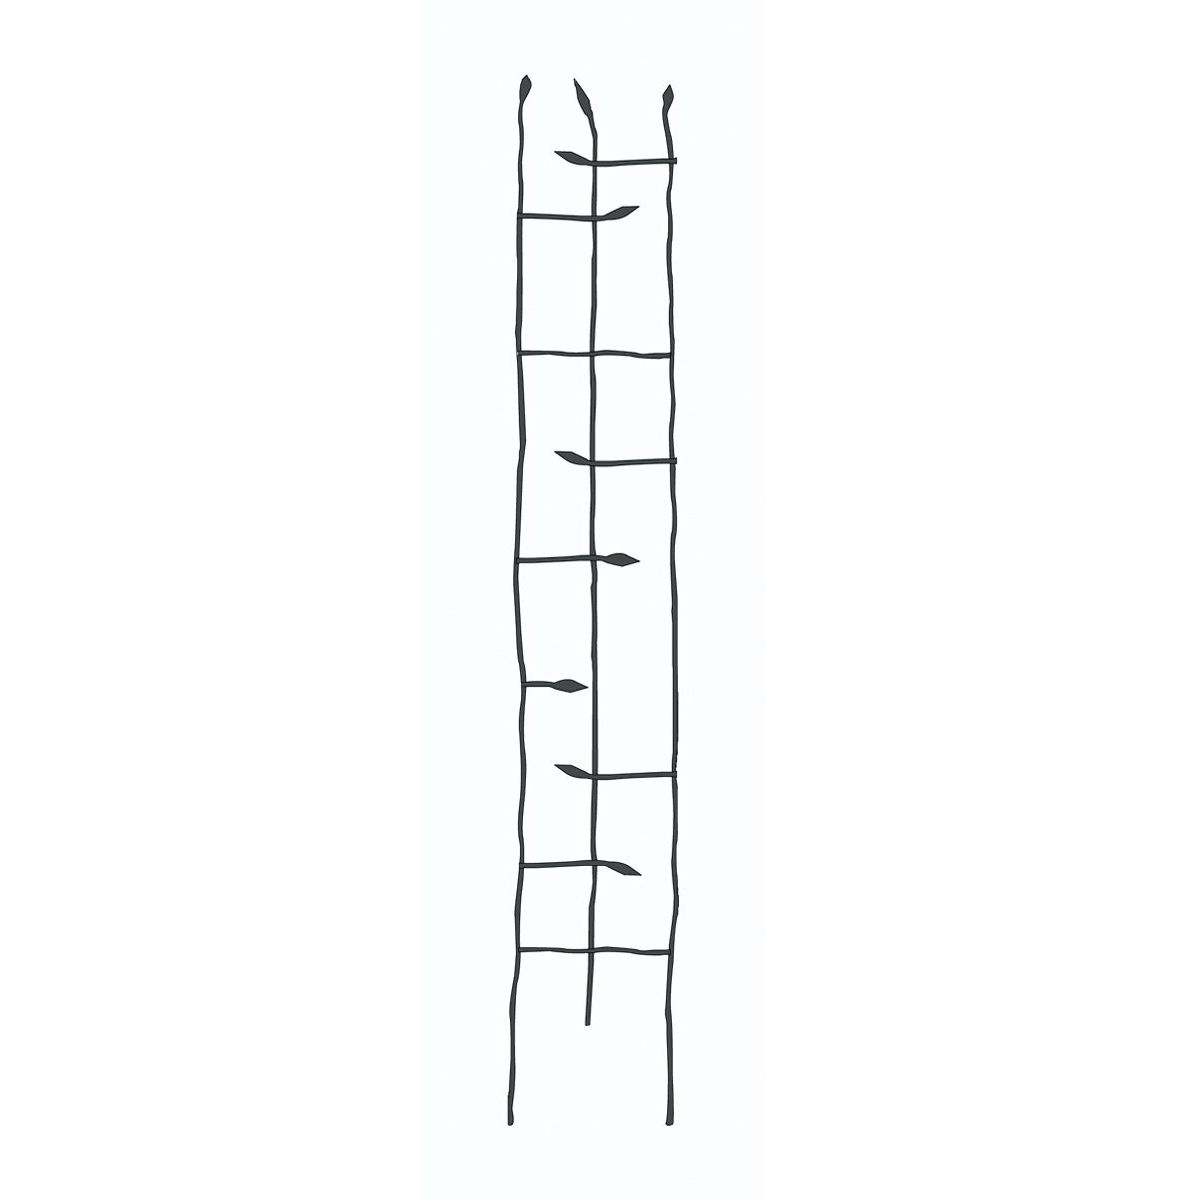 6-Ft High Narrow Garden Trellis in Metal Sprouting Twig Leaf , PFTB358415 :  This 6-Ft High Narrow Garden Trellis in Metal Sprouting Twig Leaf is hand forged. It has three vertical rods that are slightly twisted for a more natural look, with twigs with leaves sprouting inward to form the body of the trellis. Each twig crosses horizontally through the main frame for added support and has the same gnarled look as the vertical rods. Powder coated finish; Made of steel; Measures 10-inches in width by 72-inches in height.